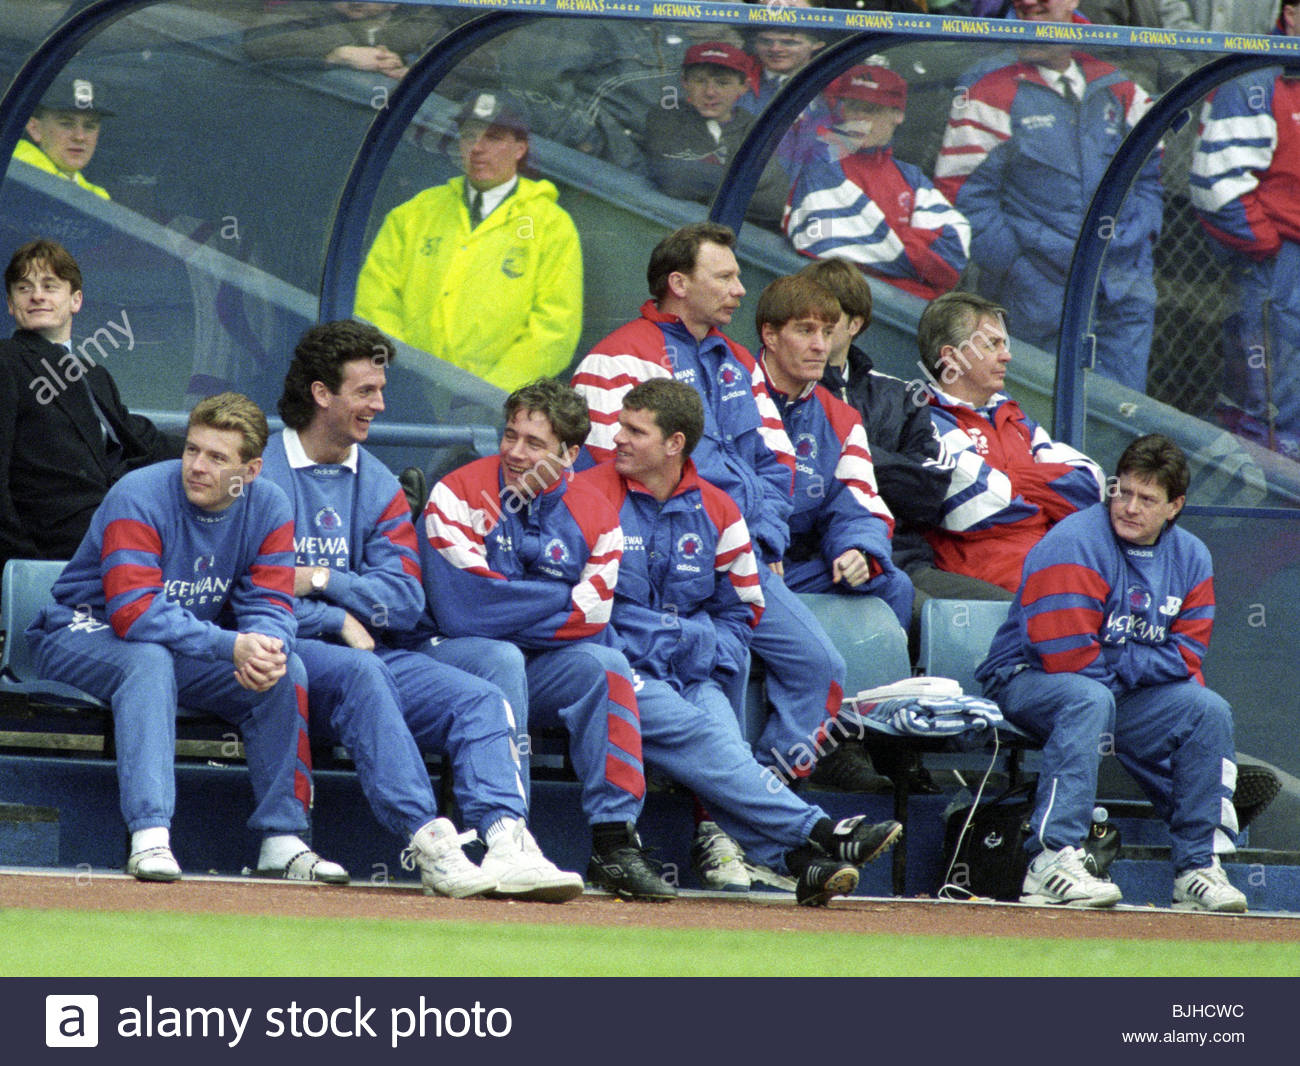 17/04/93 PREMIER DIVISION RANGERS V PATRICK THISTLE (3-1) IBROX - GLASGOW Rangers' substitutes and injured players - Stock Image